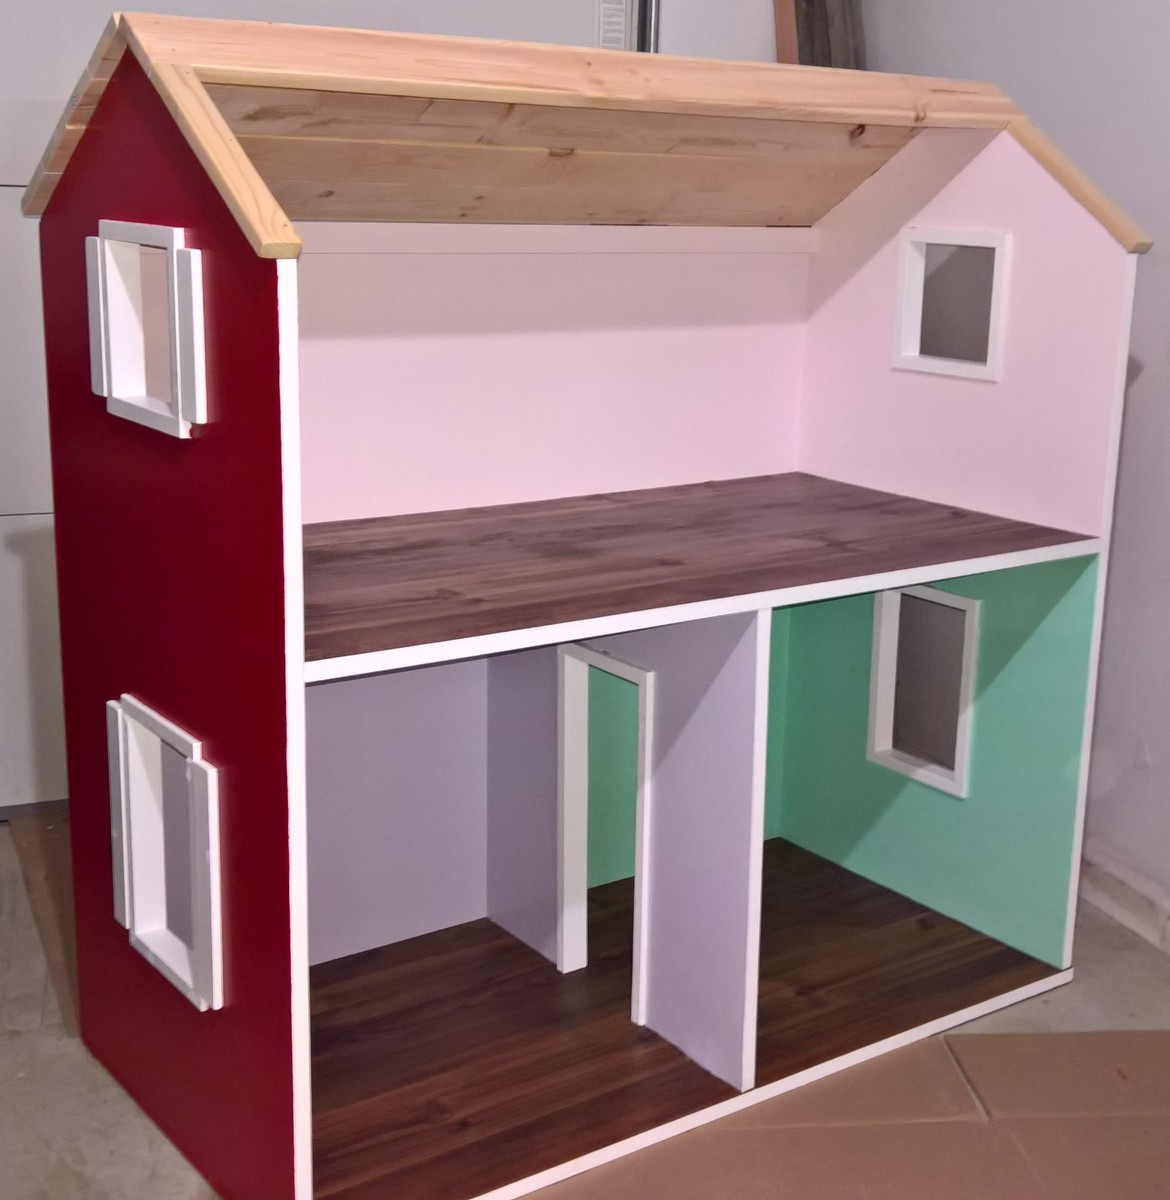 Ana white 2 story american girl dollhouse diy projects for House projects plans